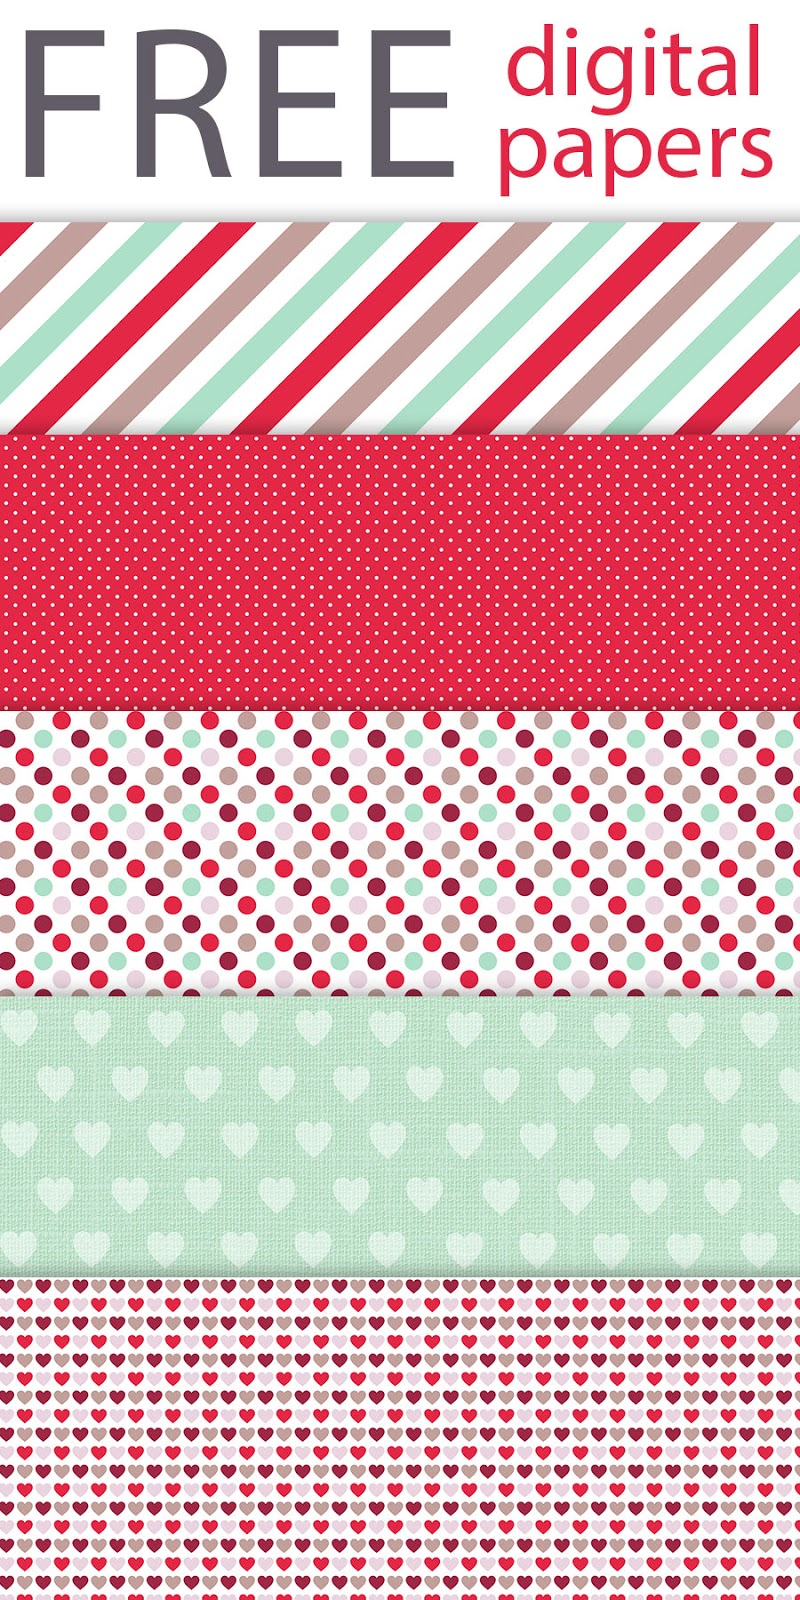 Free Digital Papers